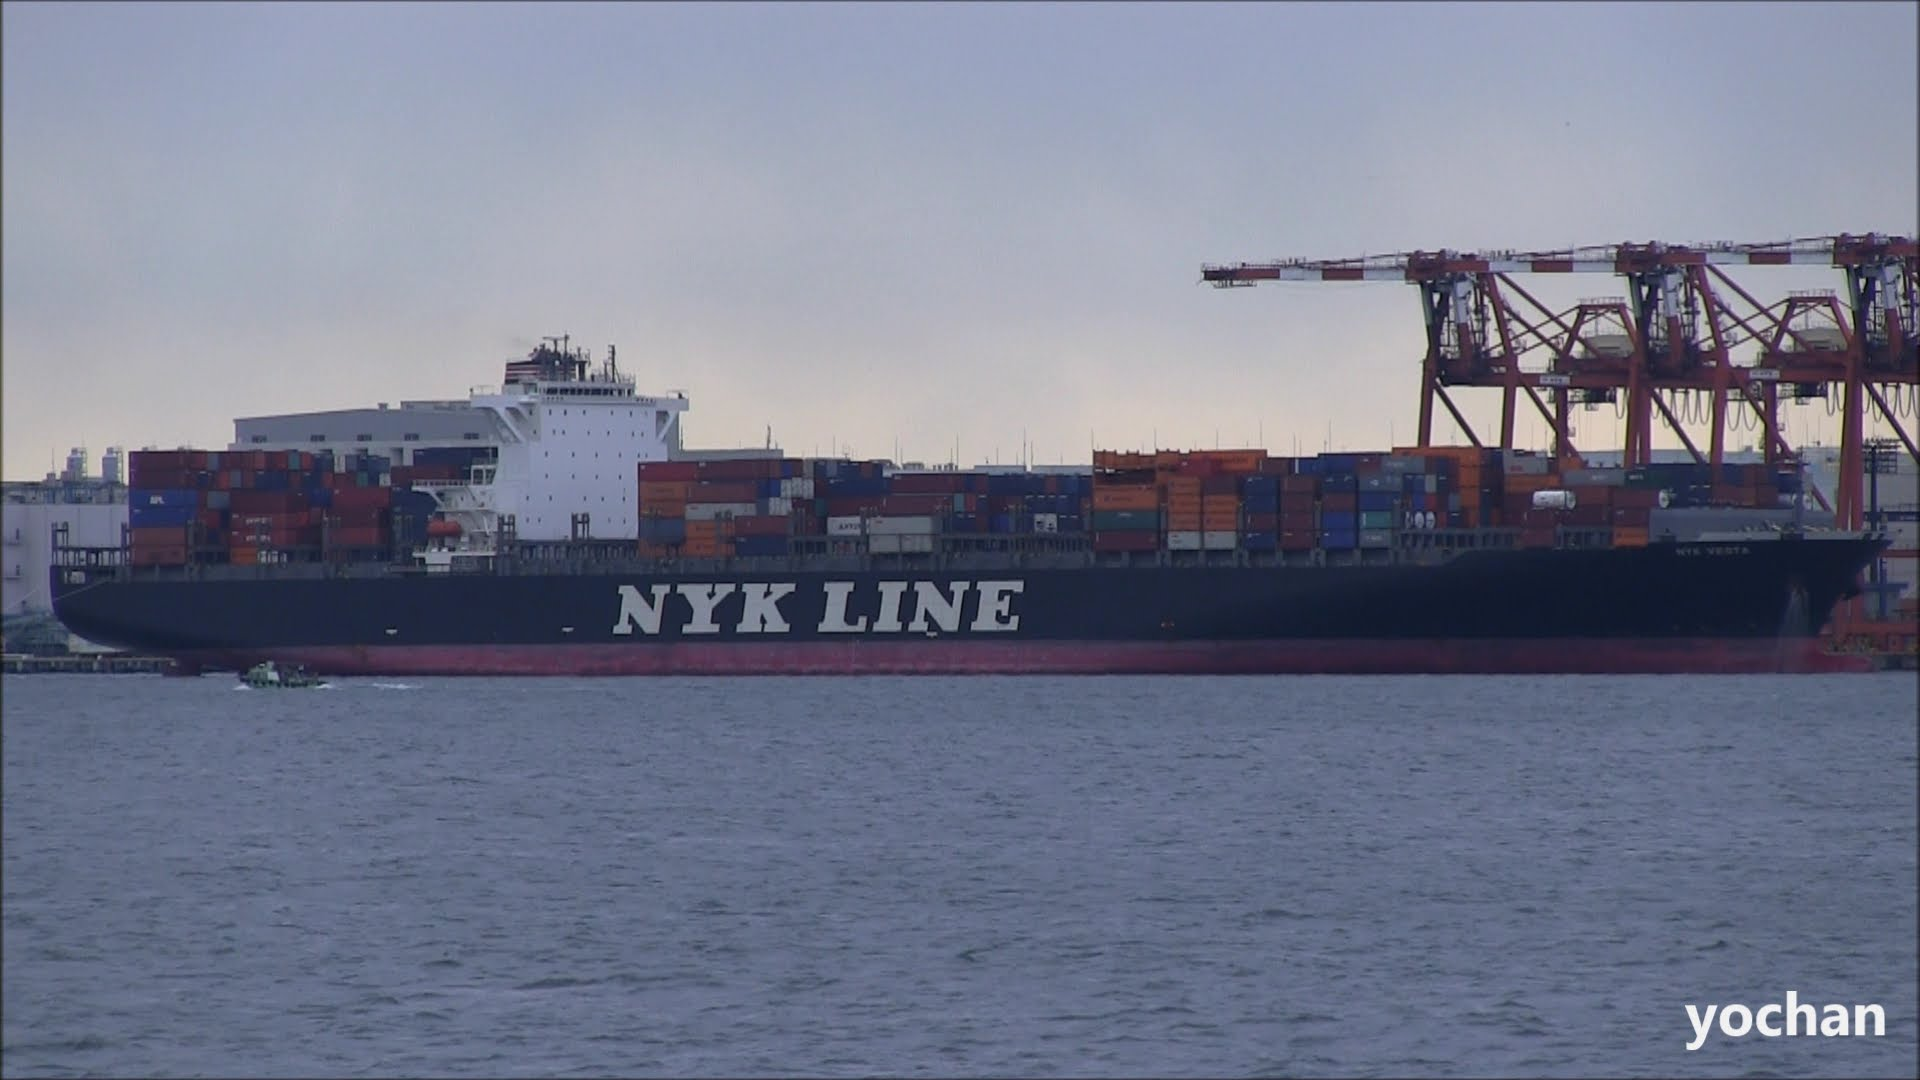 NYK AUTONOMOUS CONTAINER SHIP